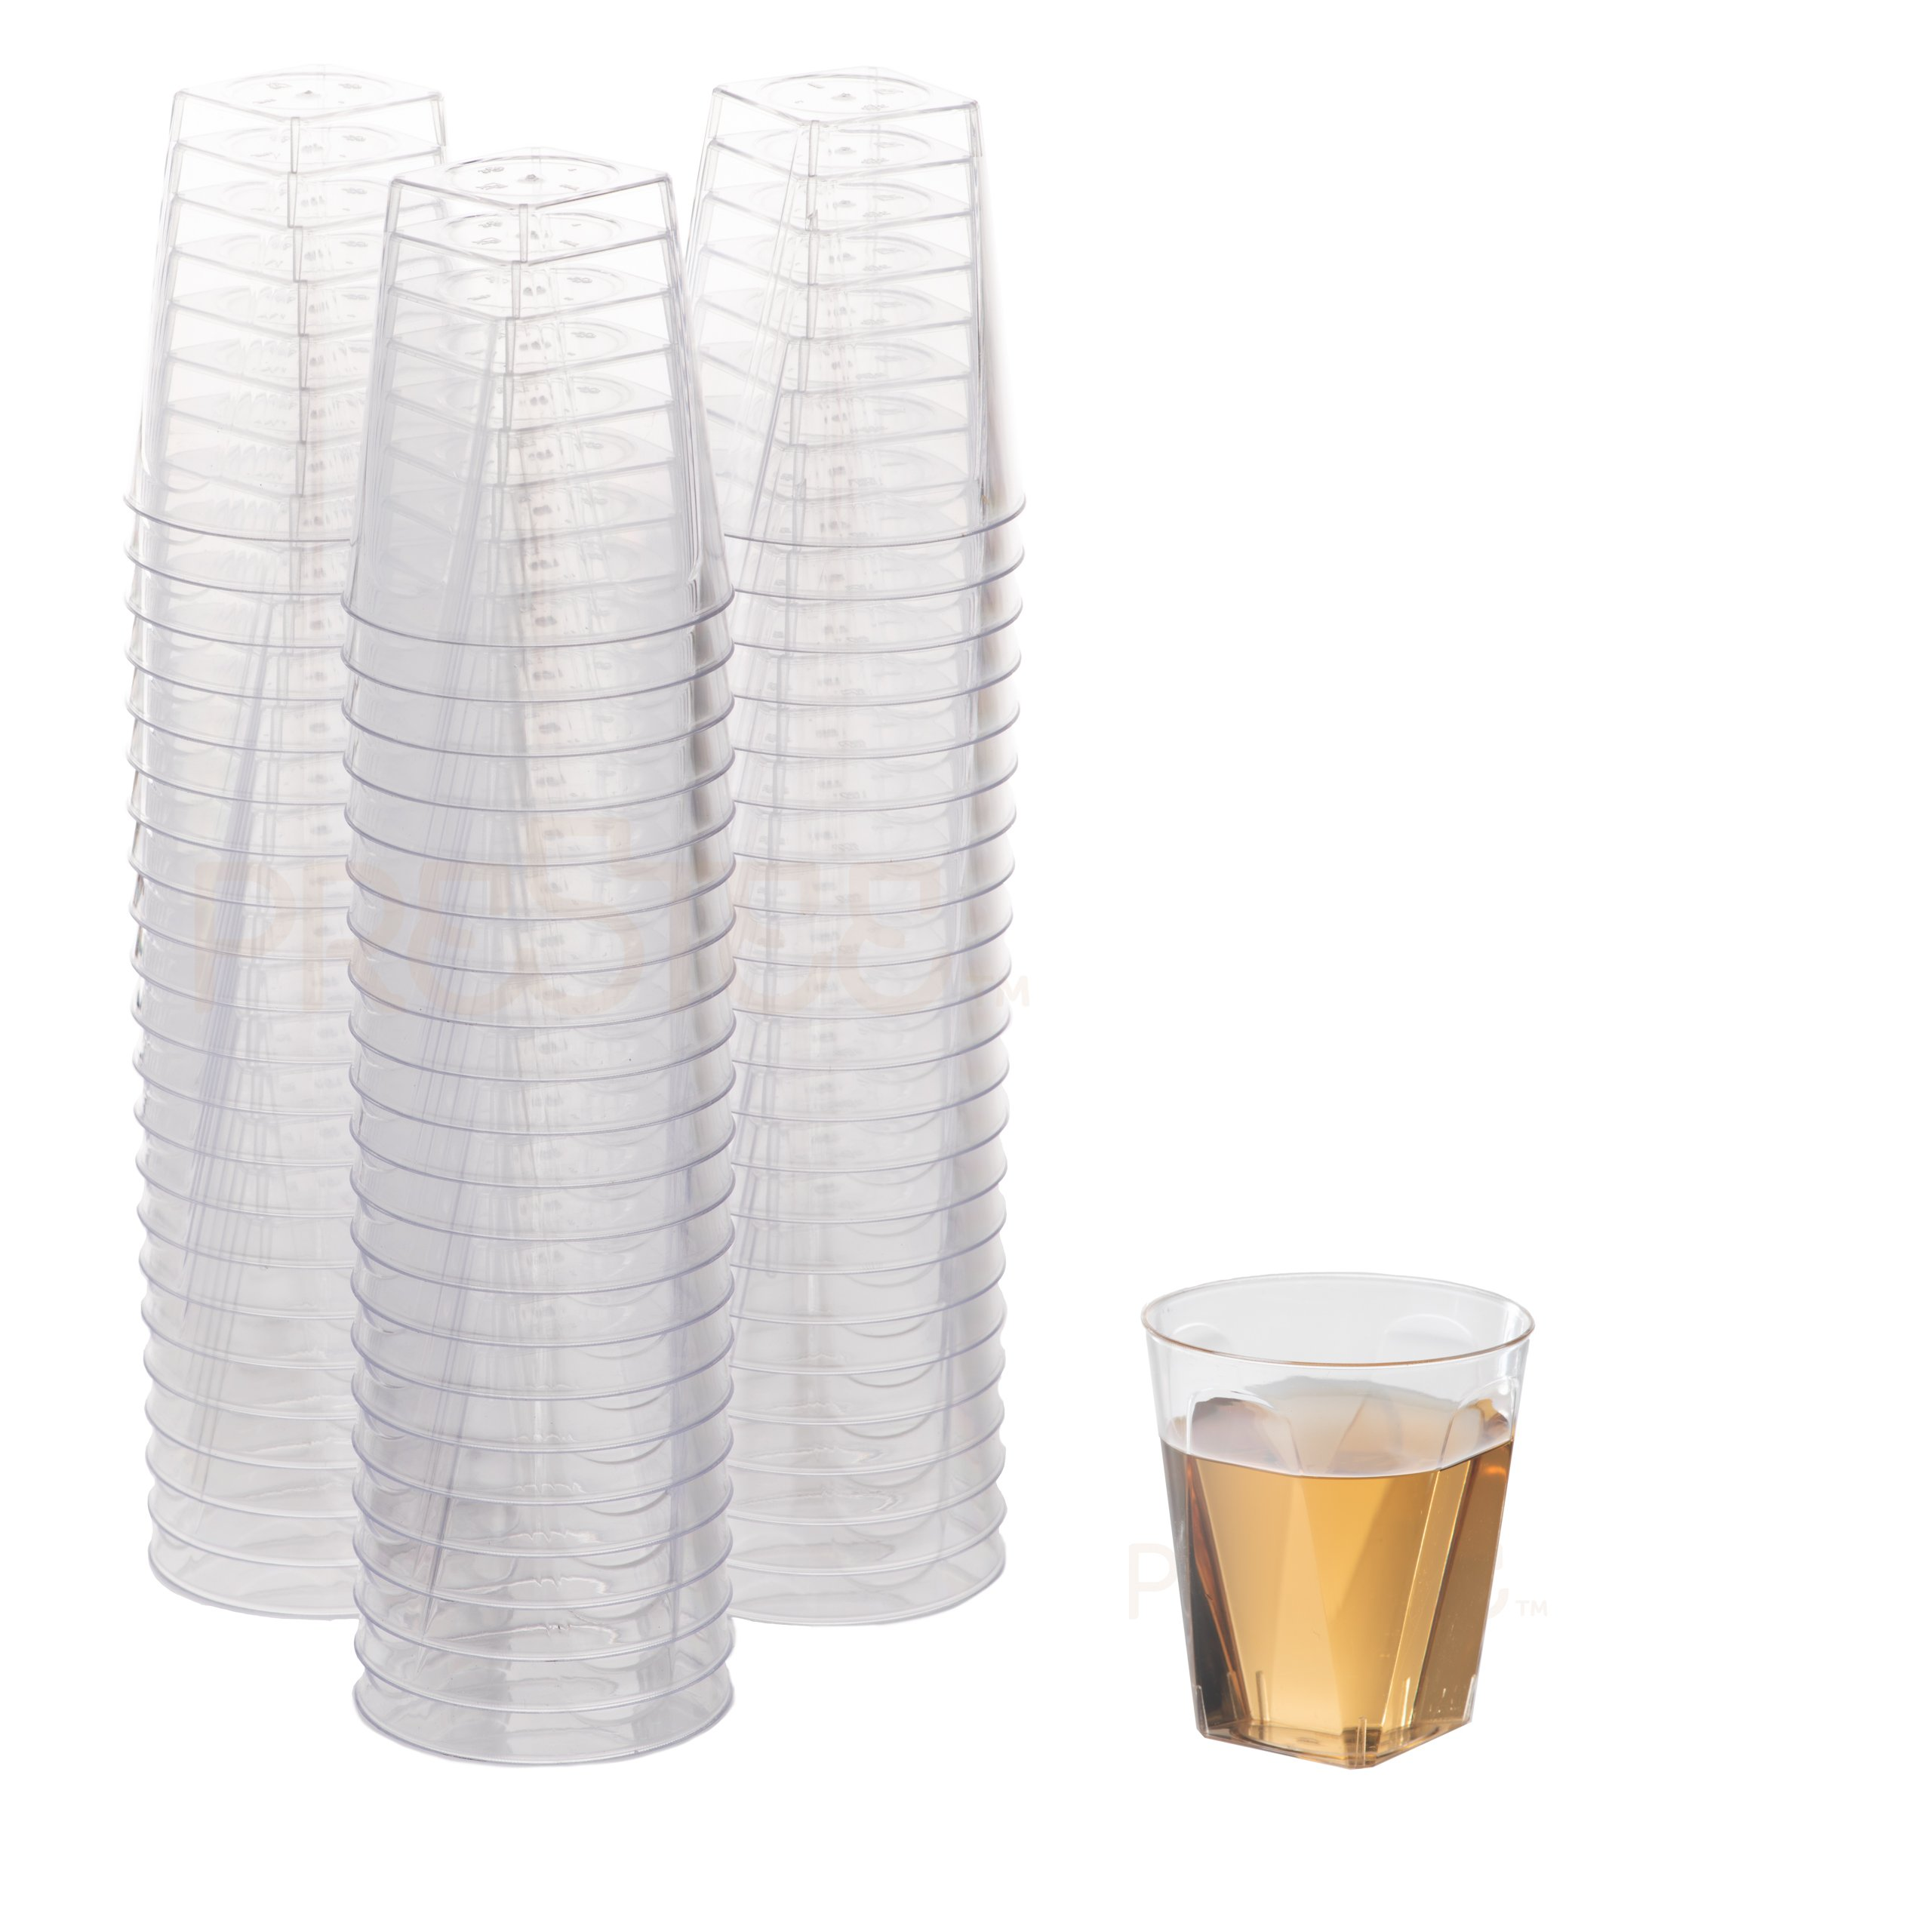 100 Clear Plastic Shot Glasses 2 OZ - Disposable Shot Glasses Bulk - Wine Tasting Cups - Small Plastic Tumbler - Square Shooter, Whiskey Mini Shot Cups - small plastic cups bulk by Prestee